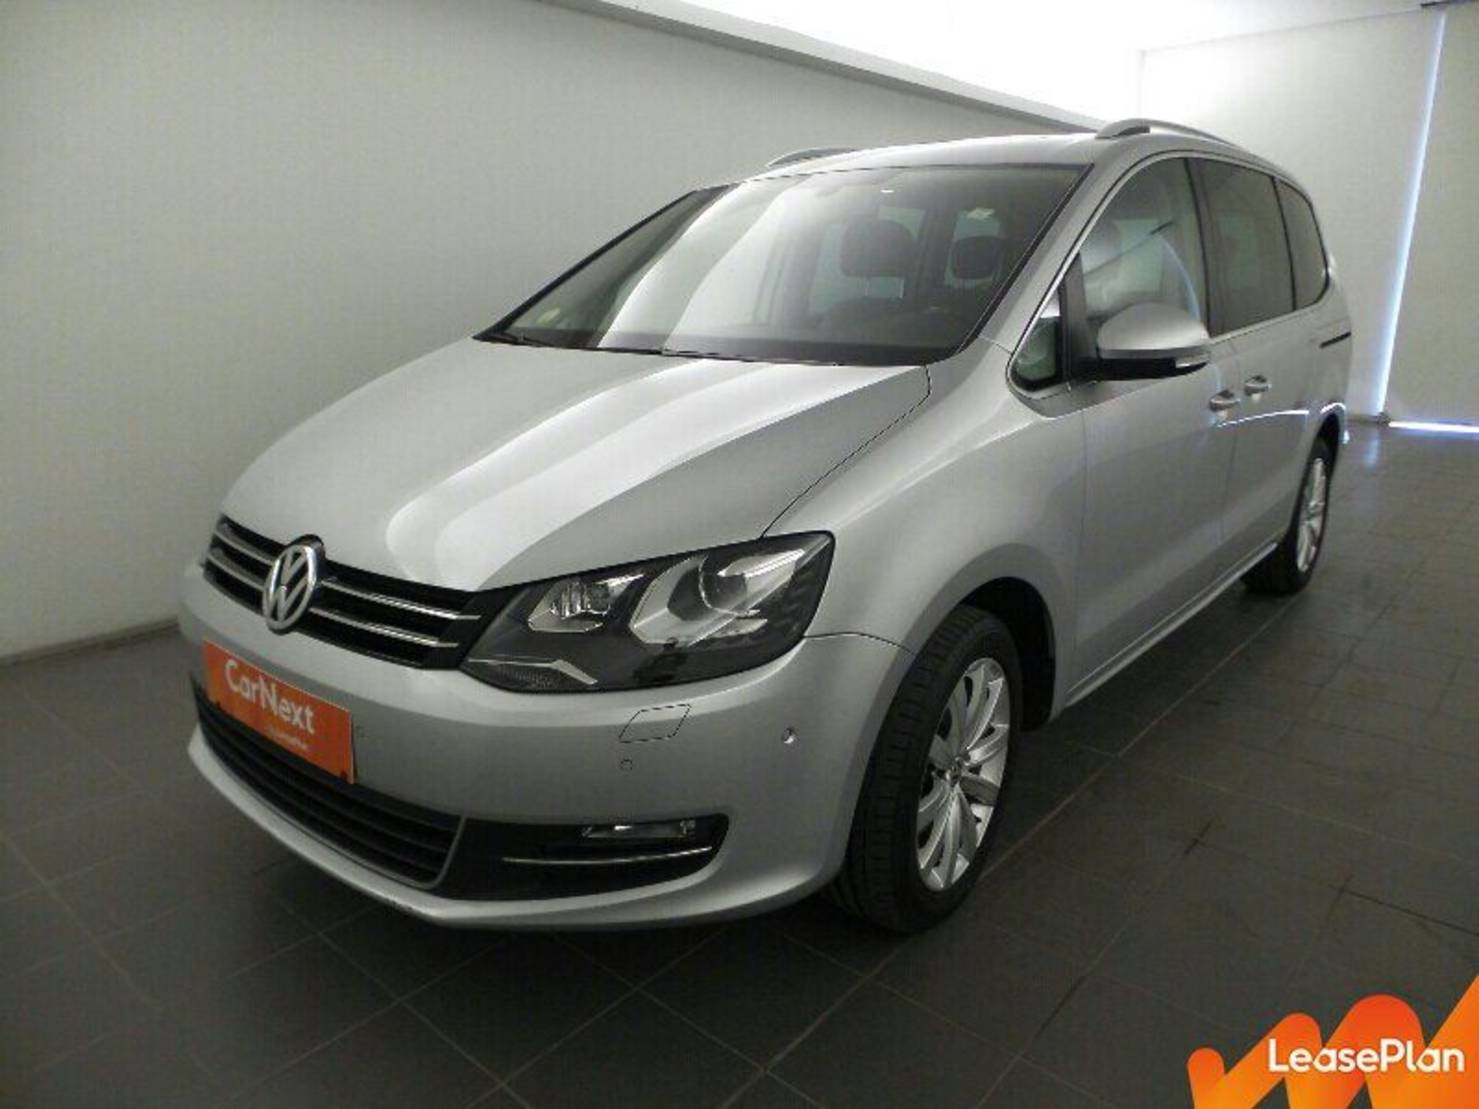 Volkswagen Sharan 2.0 TDI 140 FAP BlueMotion Technology, Carat DSG6 detail1